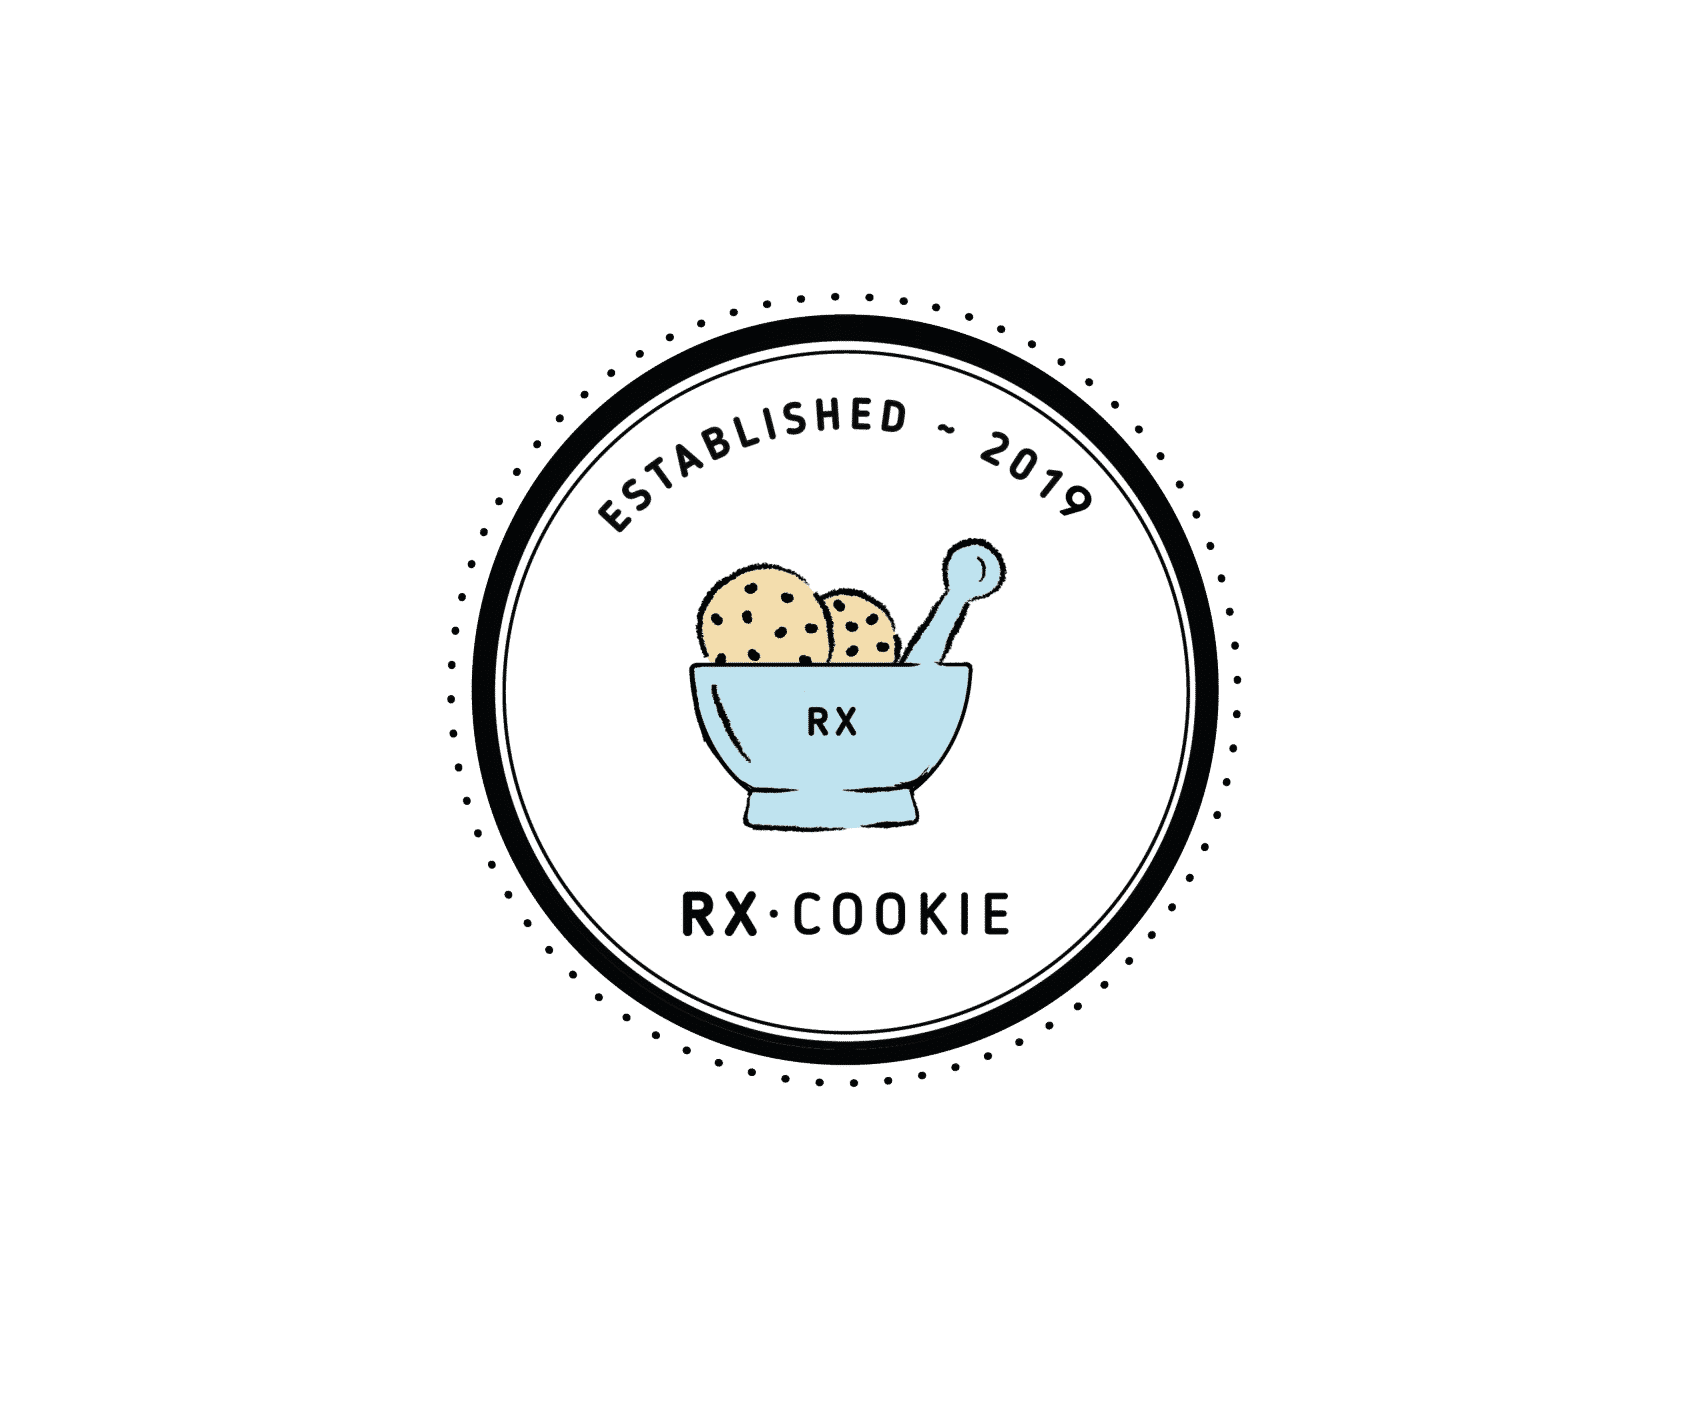 RX Cookie logo